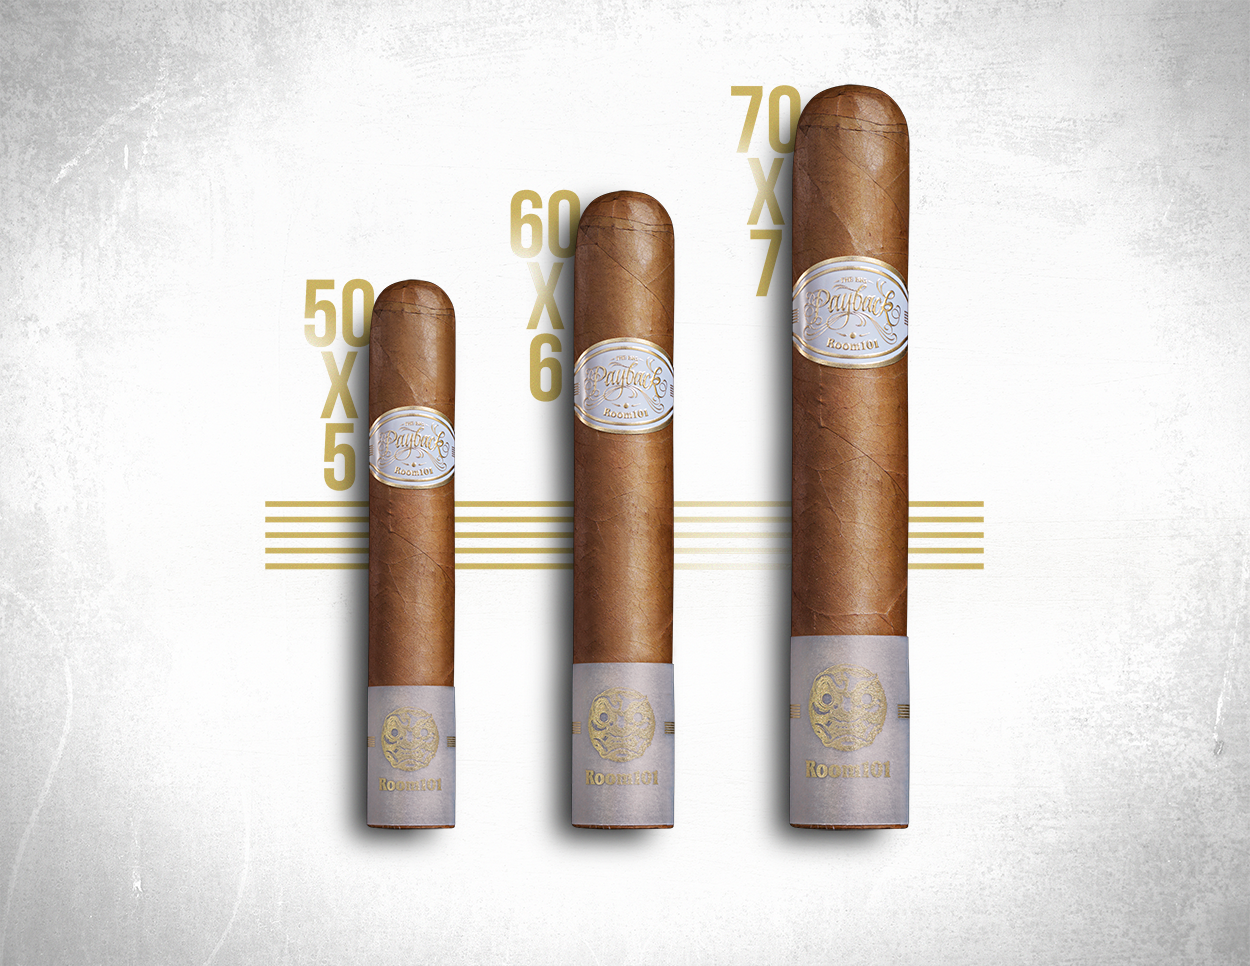 Room 101 The Big Payback Connecticut cigars